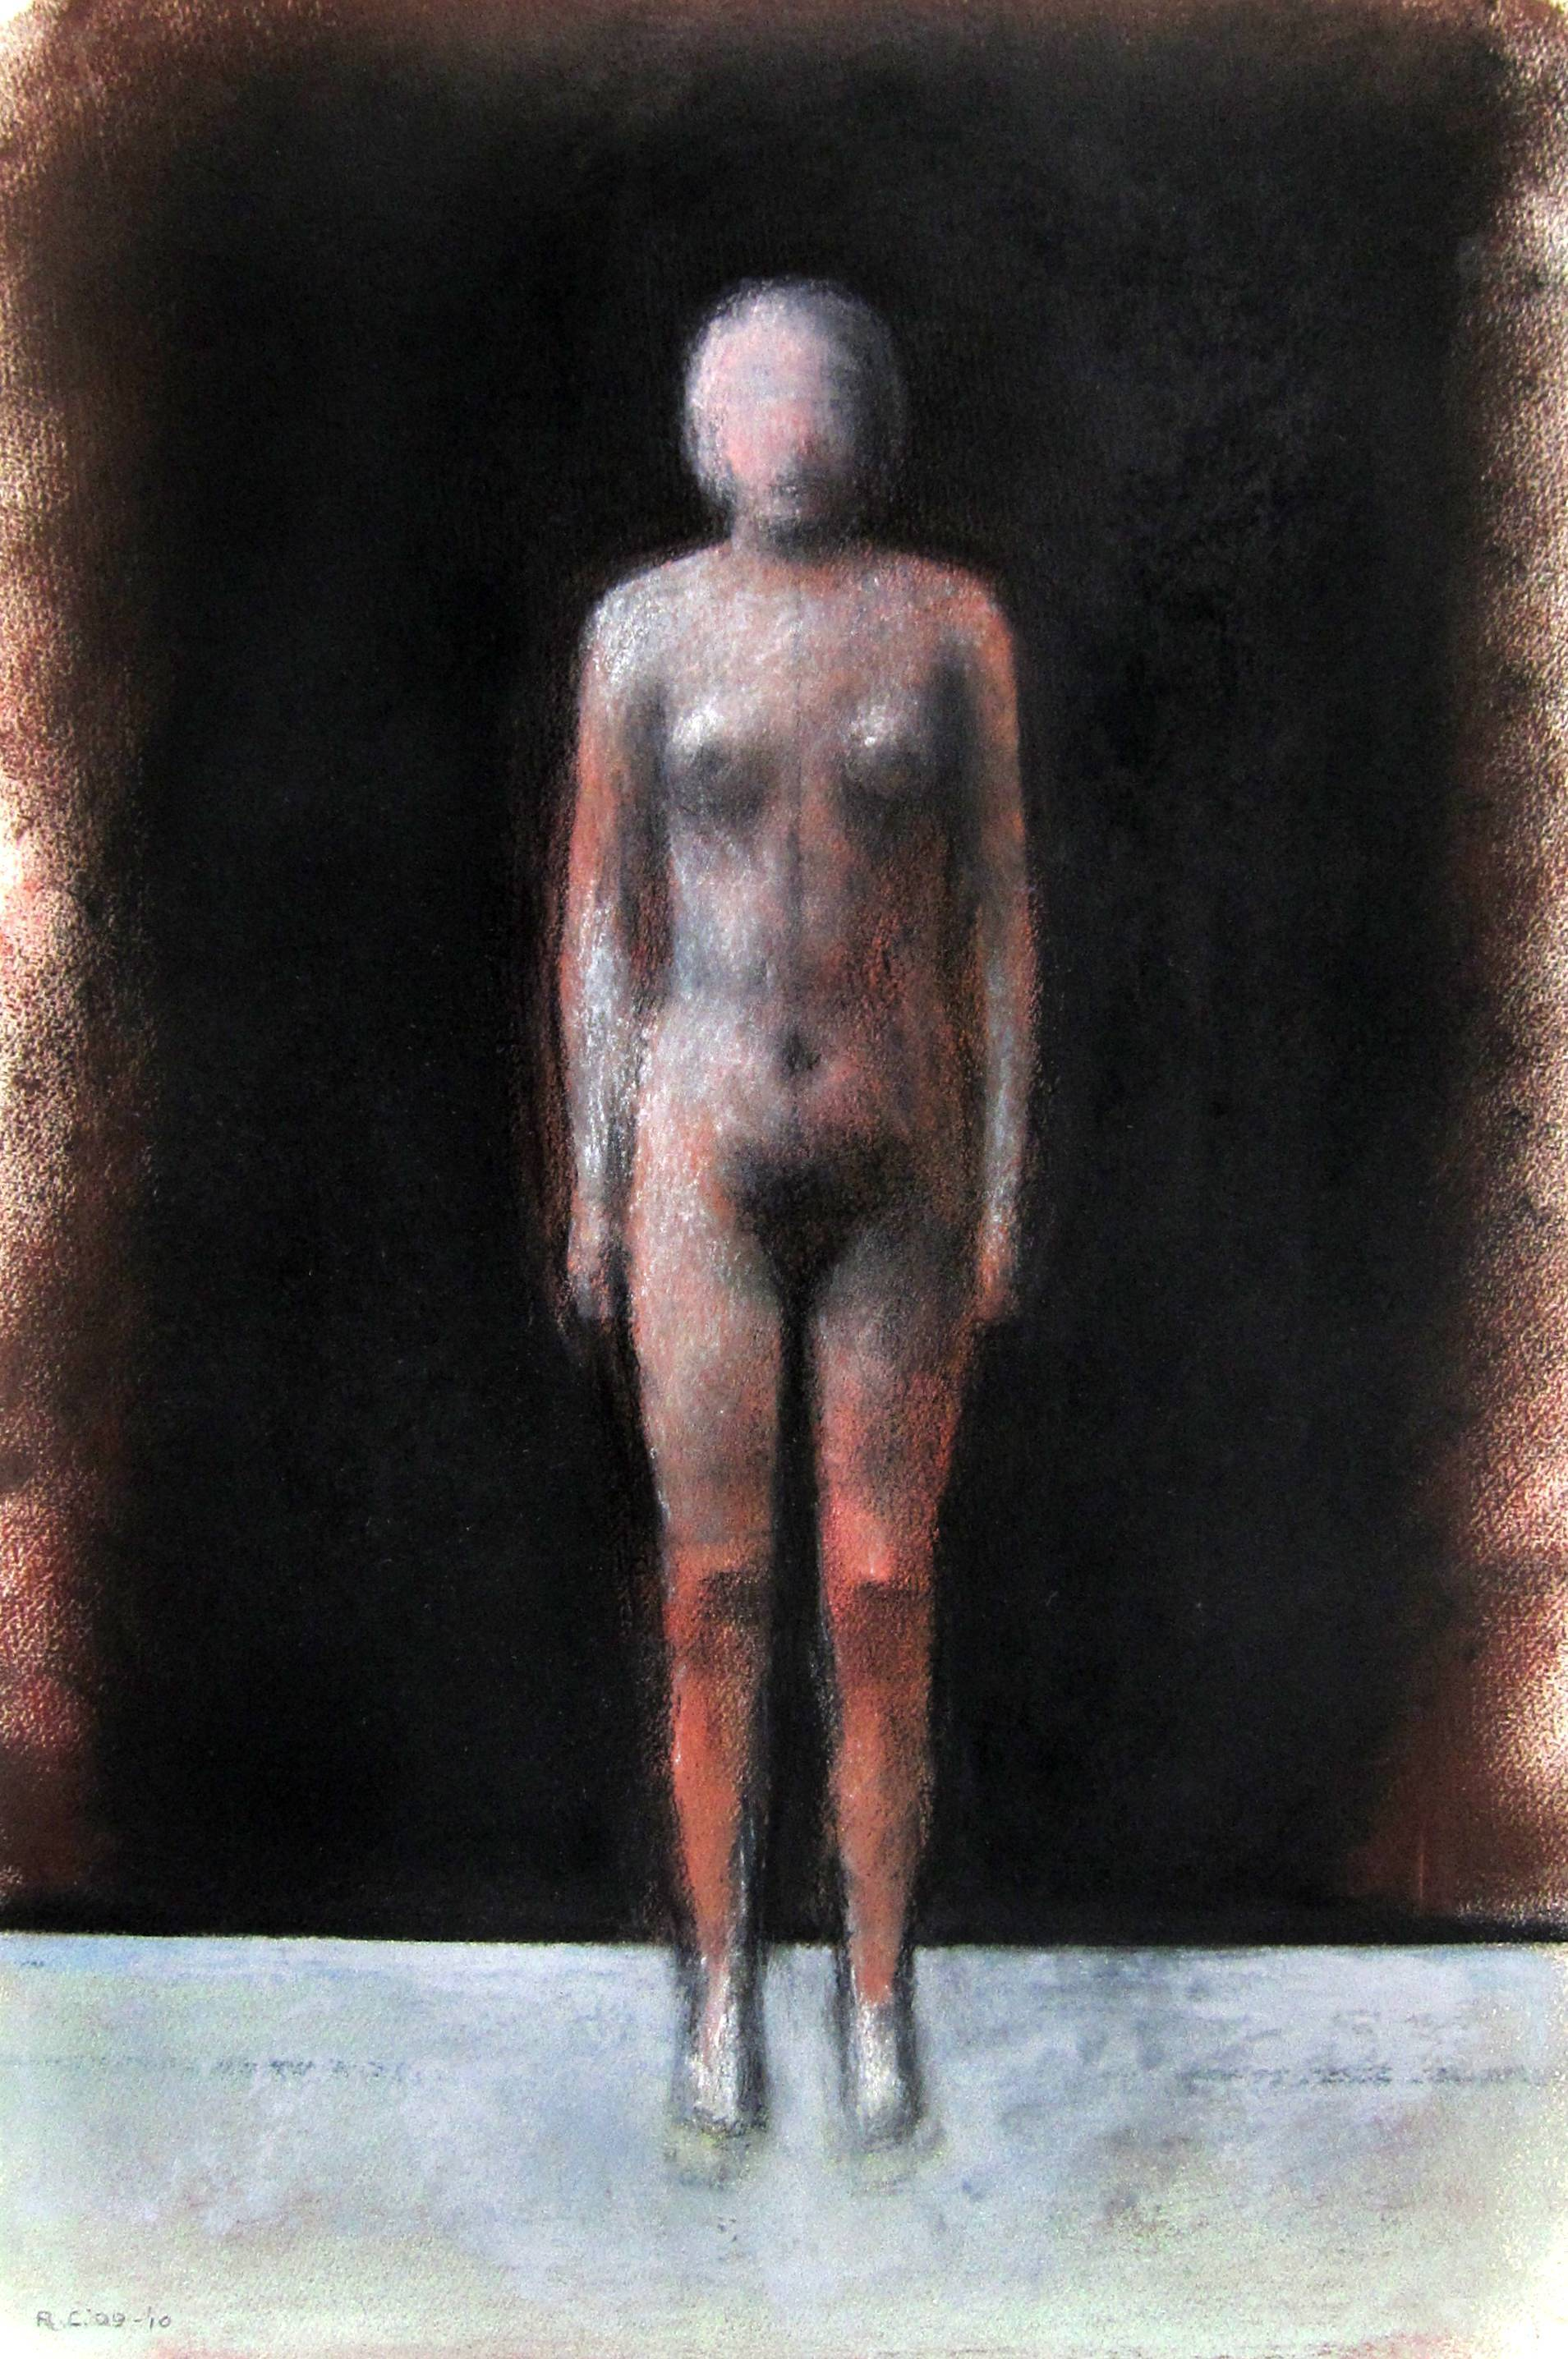 Lot 18 - ROBERT CLATWORTHY, R.A. [1928-2015]. Standing Figure, 2009-10. Acrylic and pastel on paper. Signed